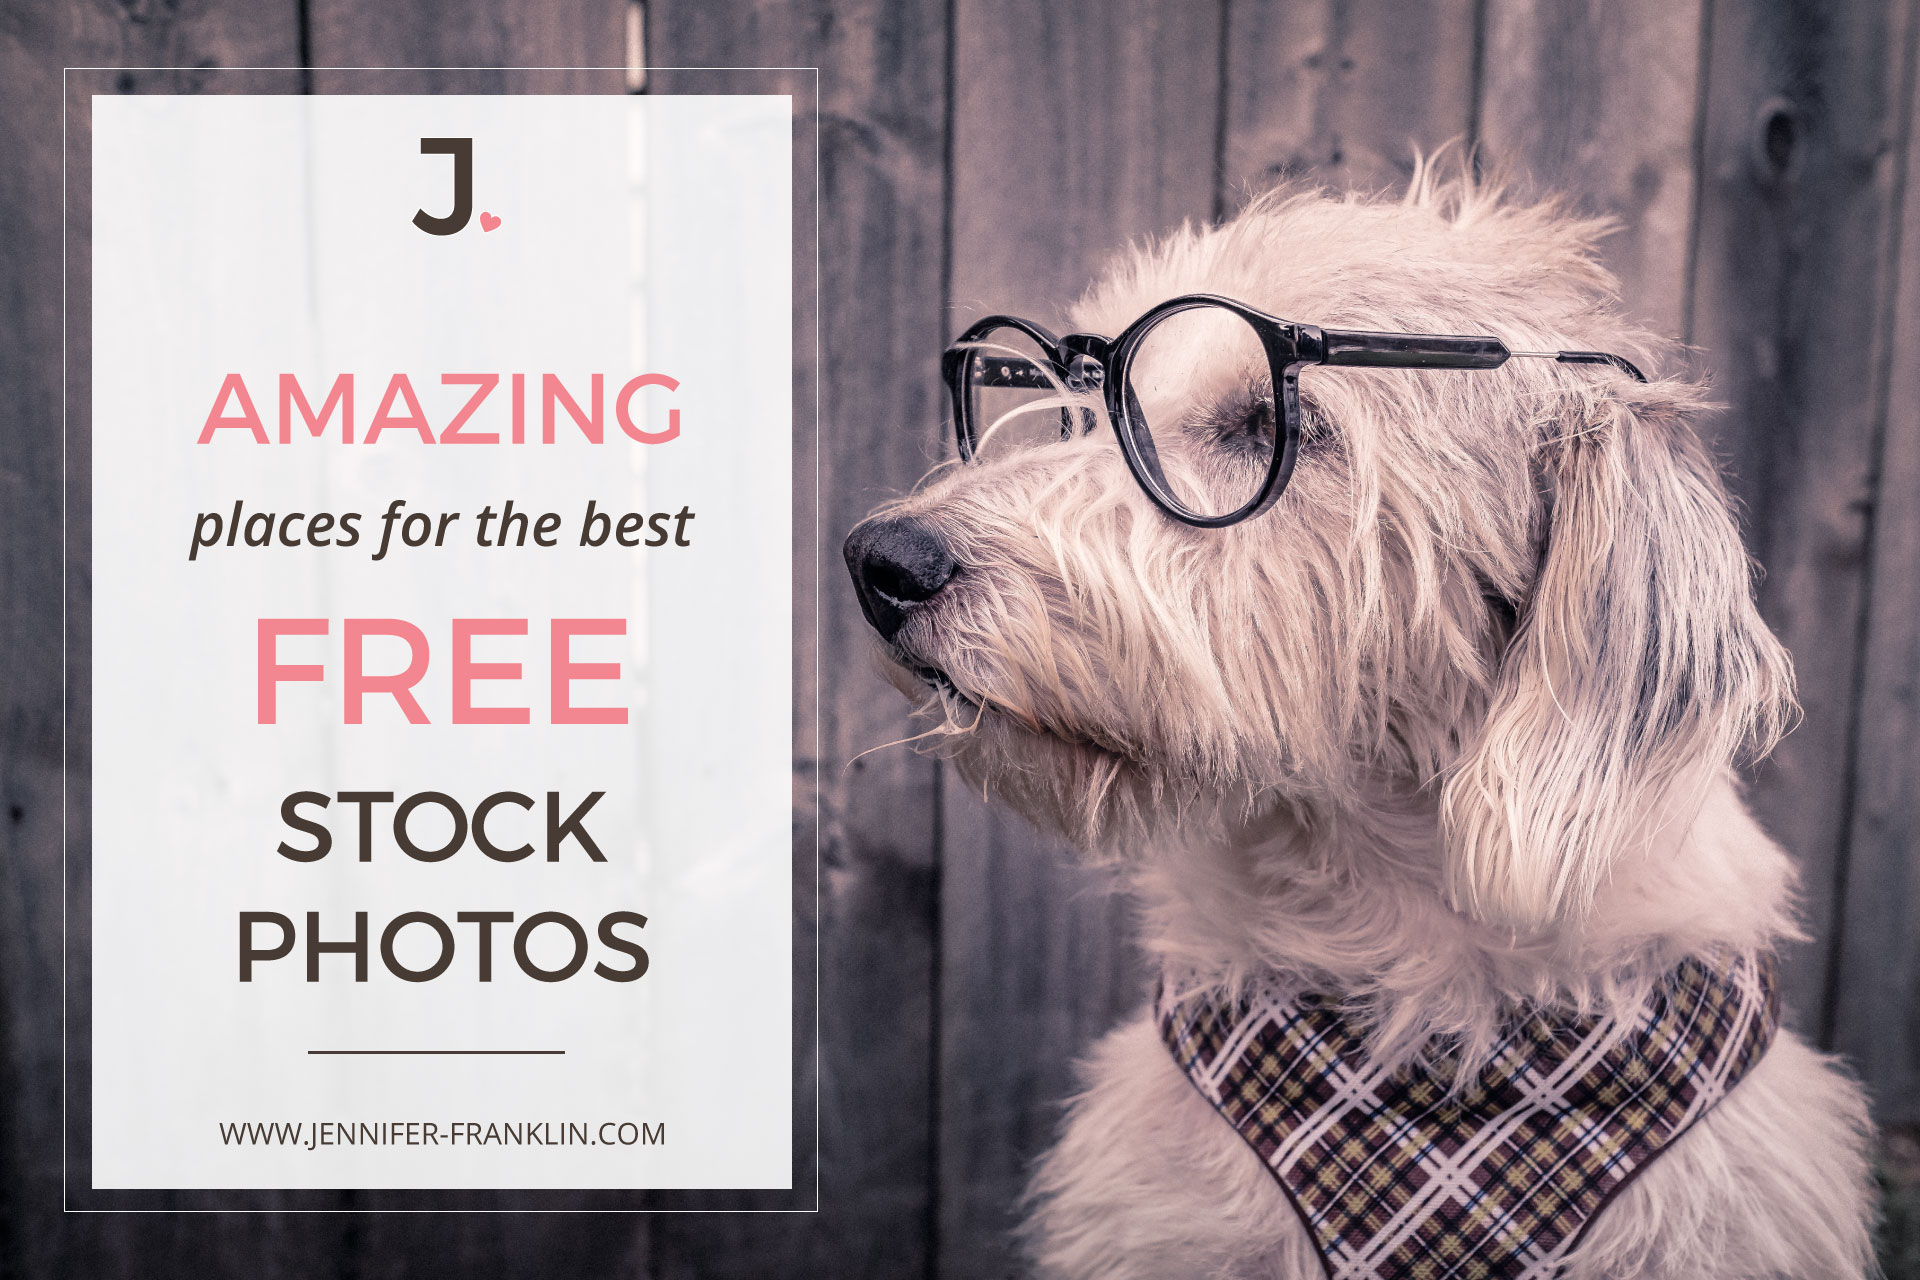 Best Free Stock Photo Websites One of the most important elements of your website, blog, and social media designs are the images that you choose. Using high quality photos will greatly enhance your projects and project a professional image of your brand. There are some popular paid image sites like iStockphoto and Shutterstock where you can find amazing images. You pay a fee for the rights to use the images as you wish.